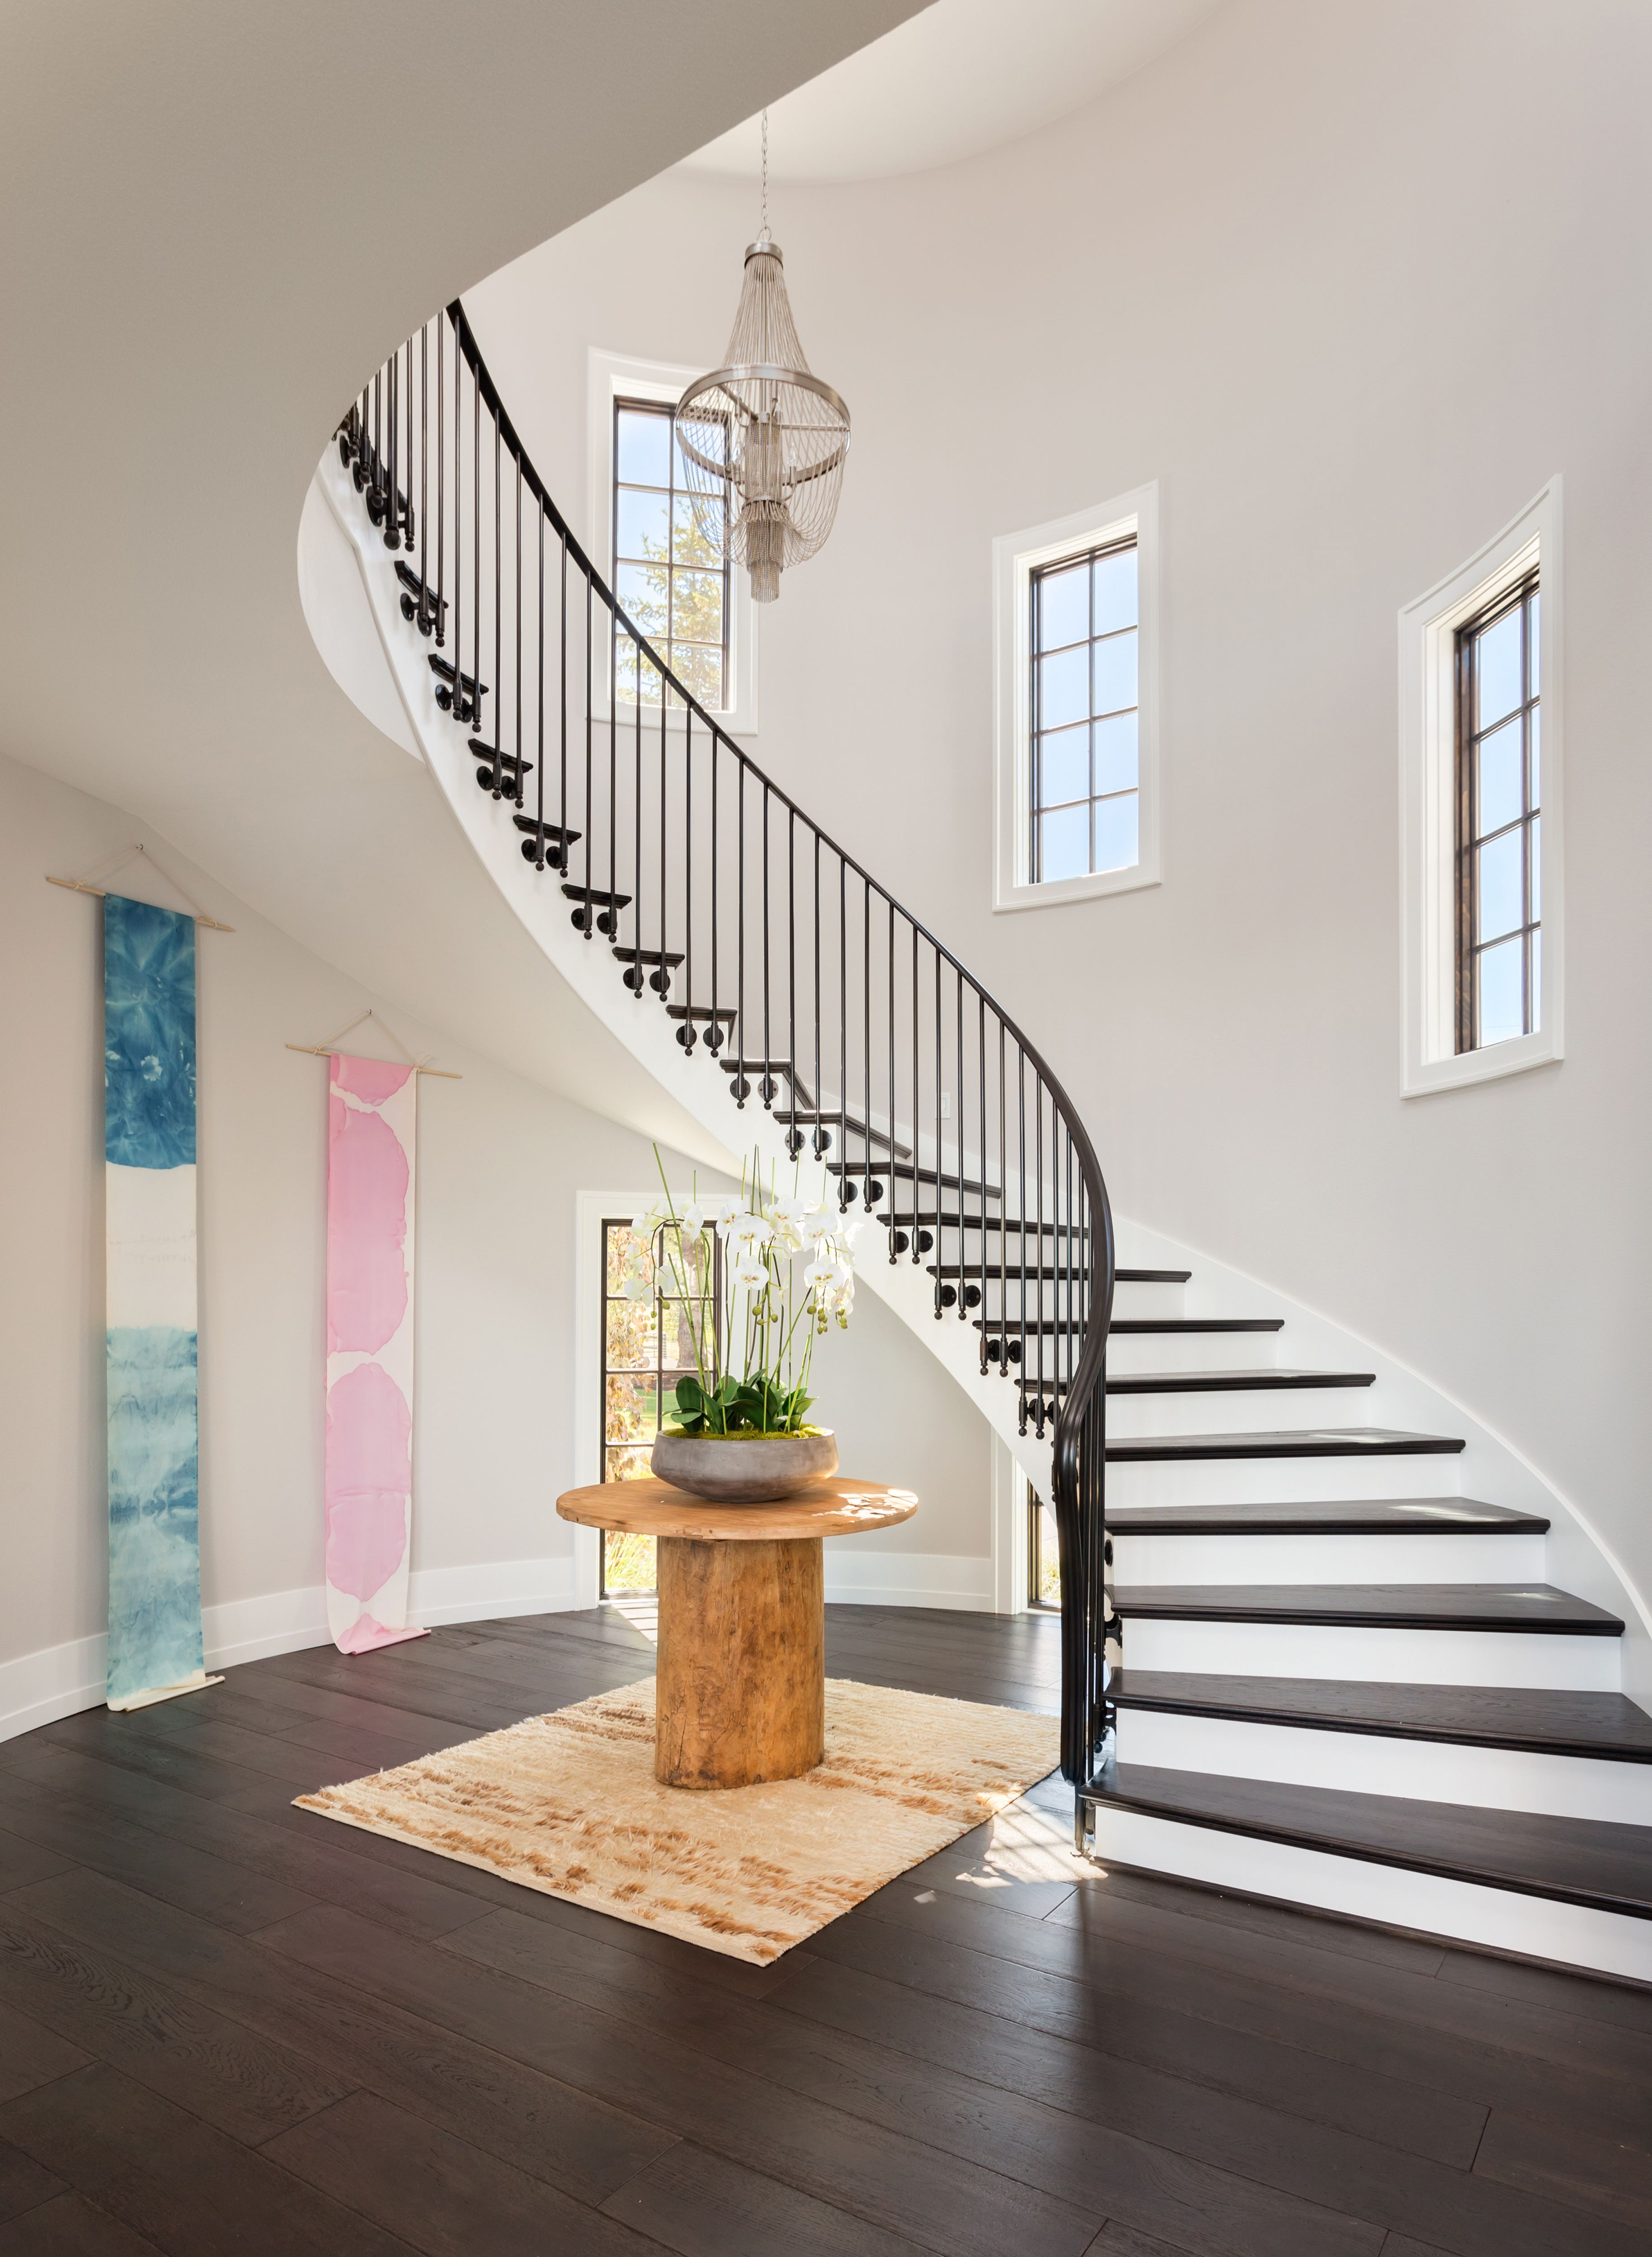 P We Completely Designed And Built This Staircase And Balustrade System For The 2016 Street Of Dreams Prim Home Stairs Design Staircase Design Stairs Design